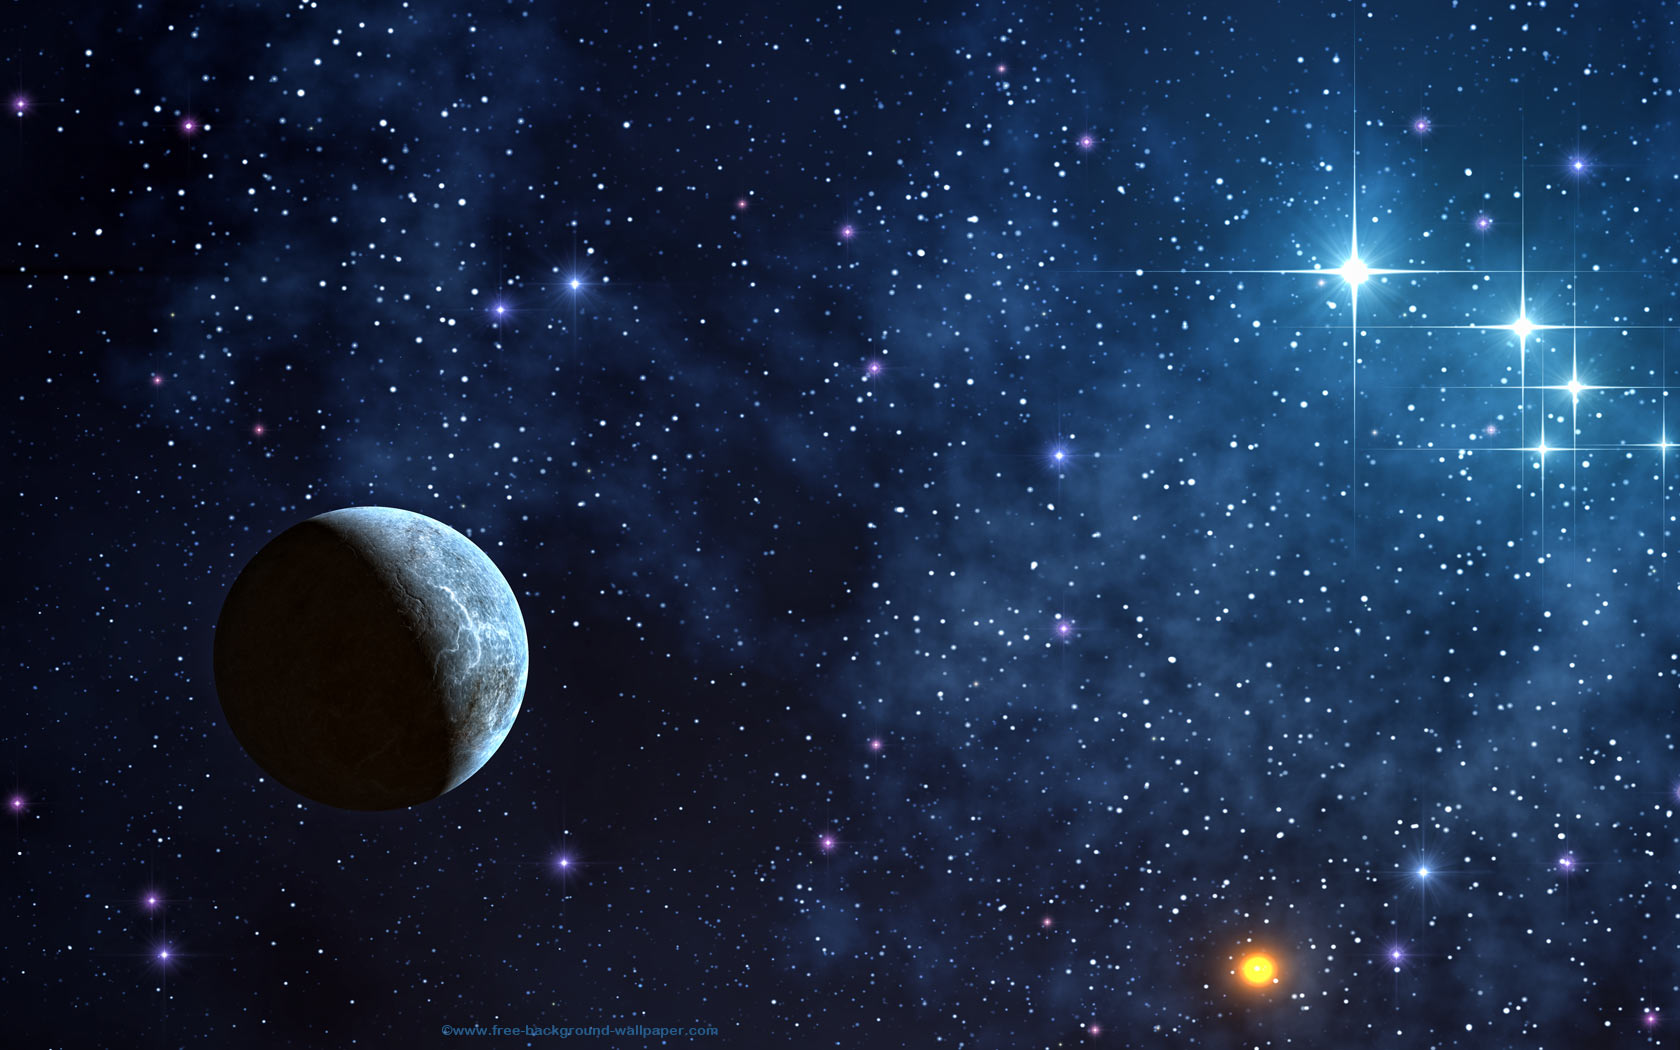 Shinning Stars Space Picture   Space Background Wallpaper   1680x1050 1680x1050